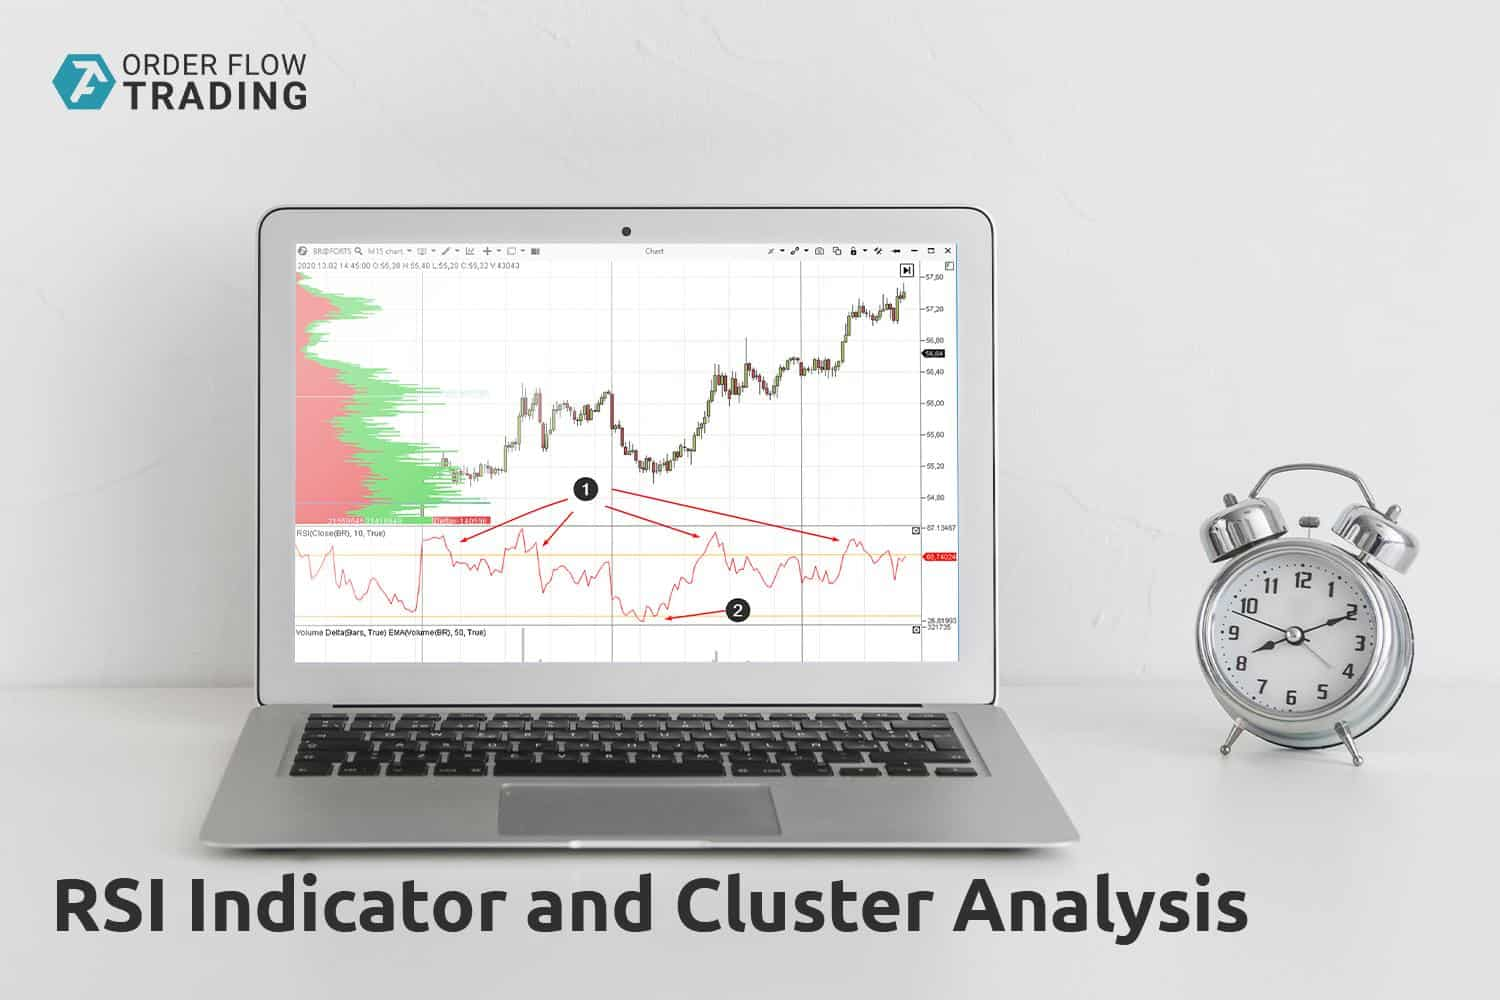 How to combine the RSI indicator and cluster analysis